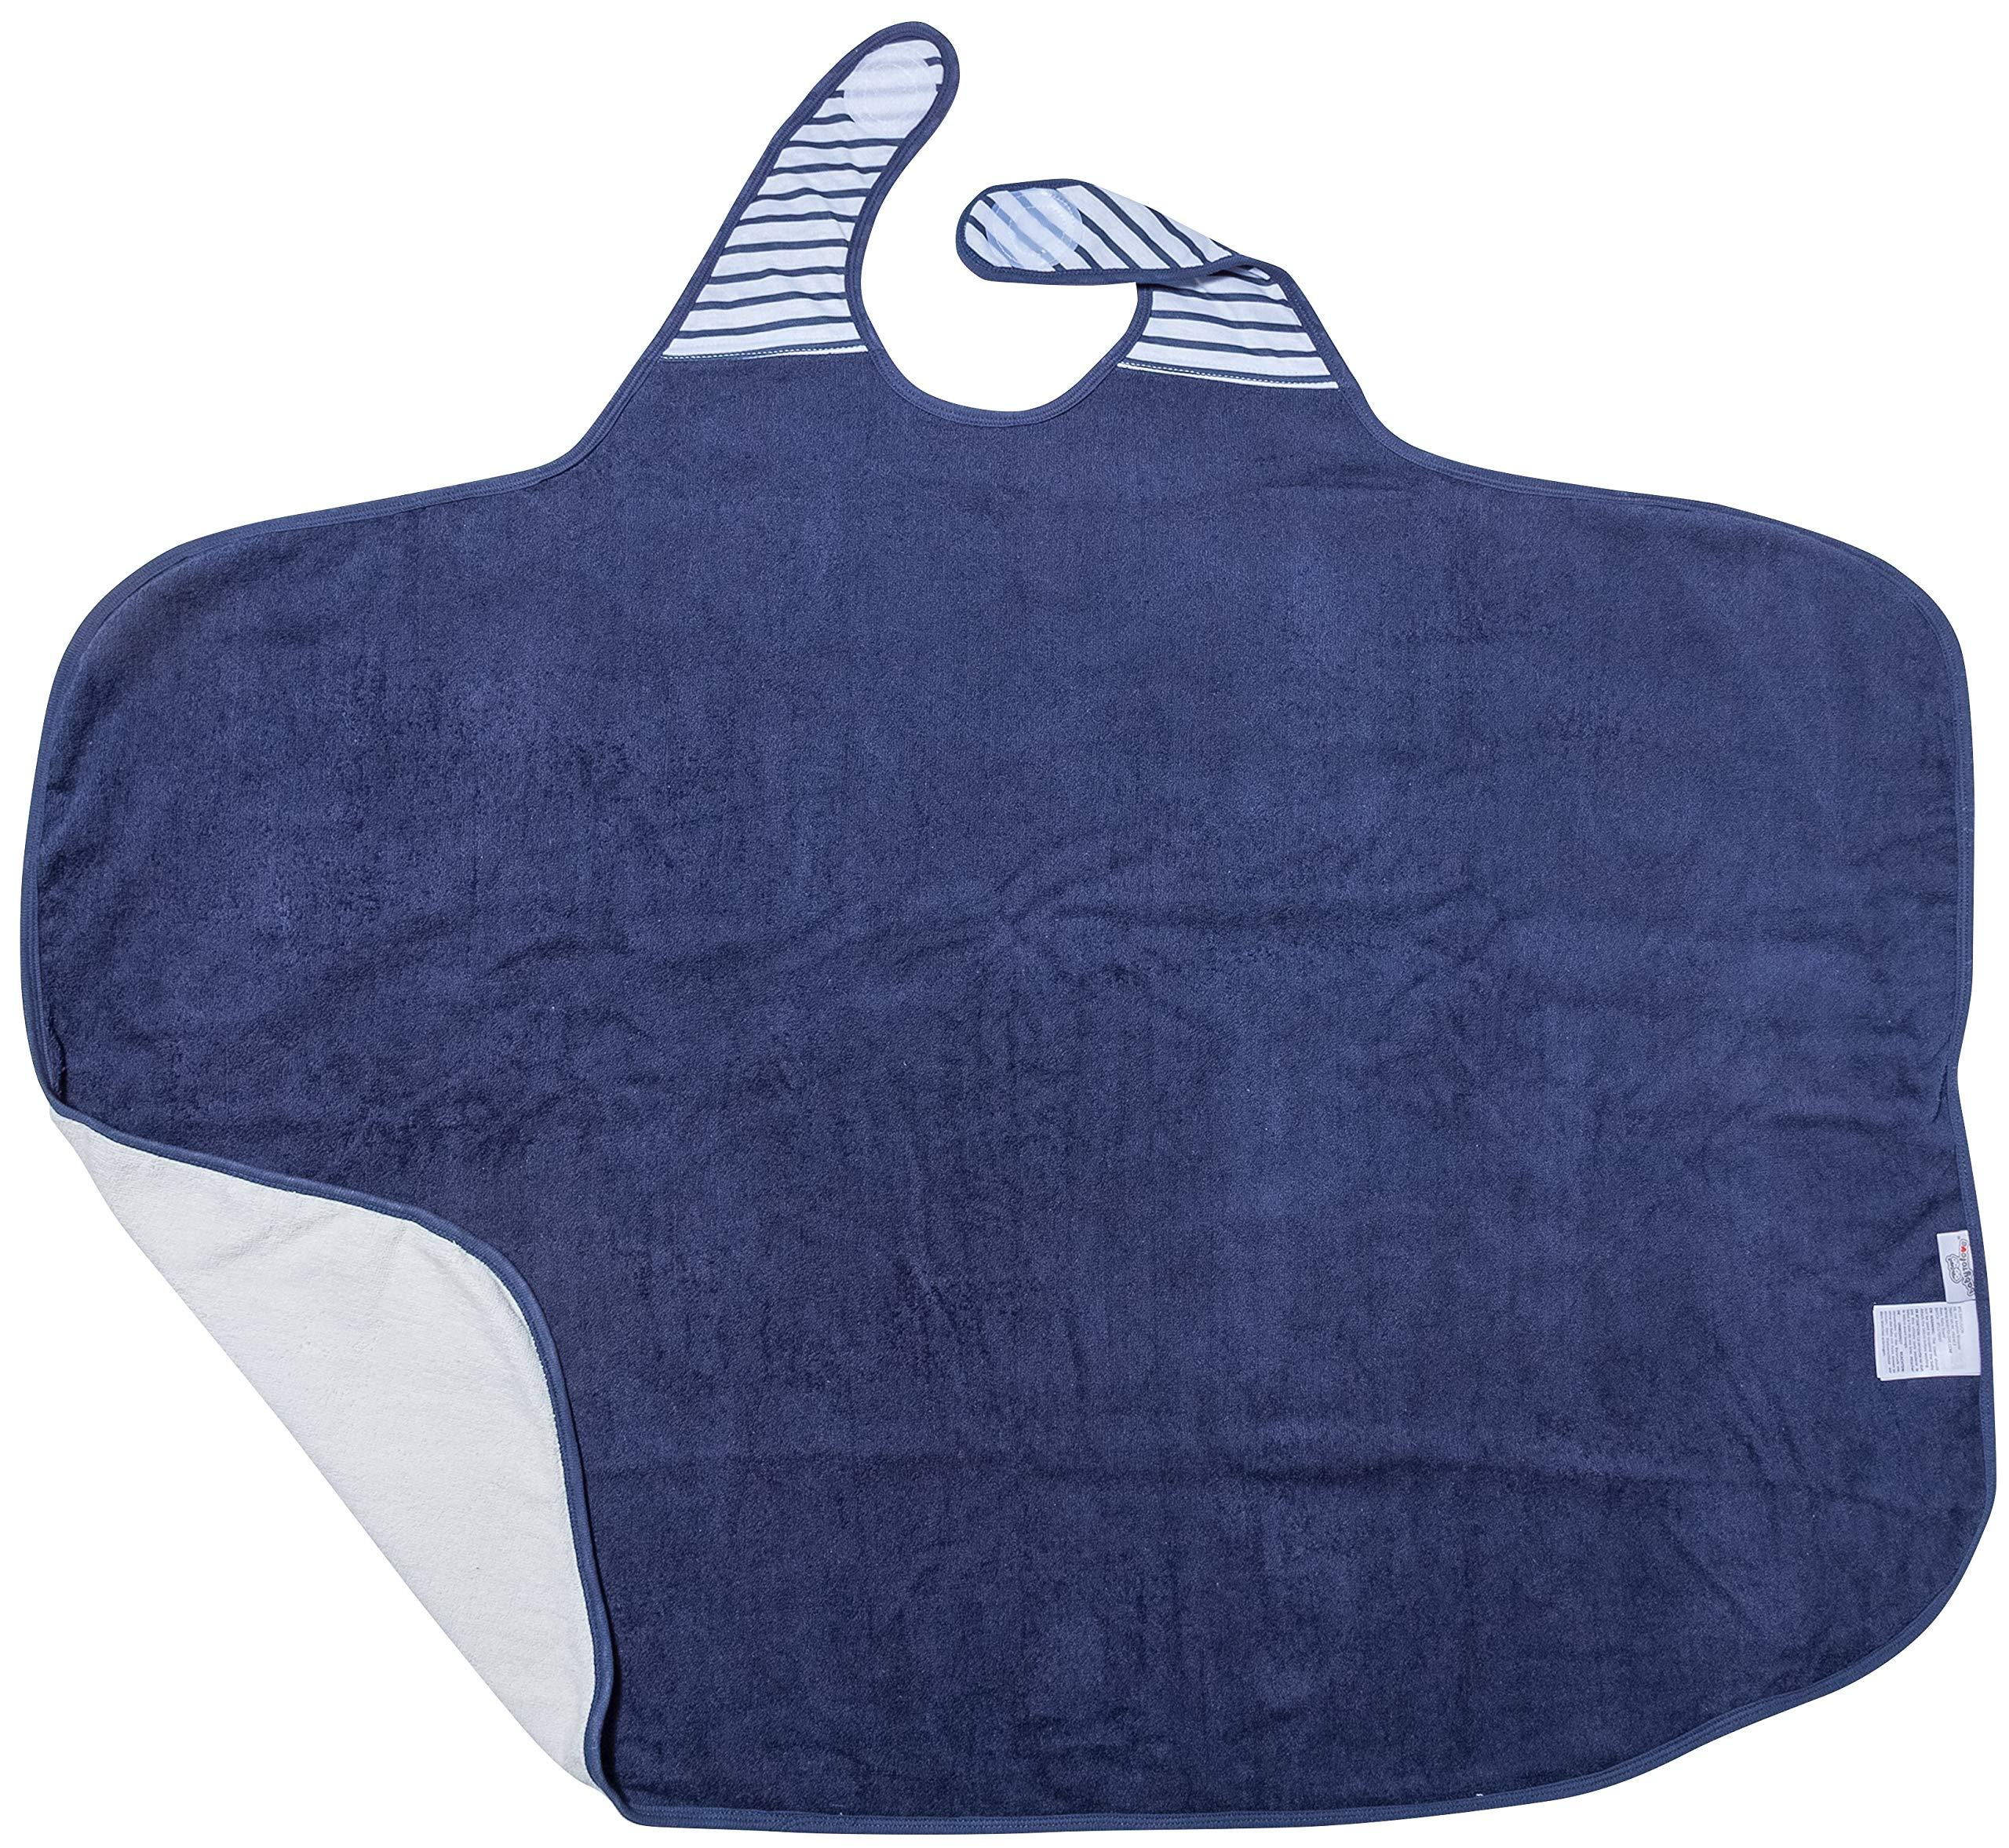 Baby-to-Love Toddler Bath Towel, Extra Large 41x43 Smart with Apron (Blue Stripes)